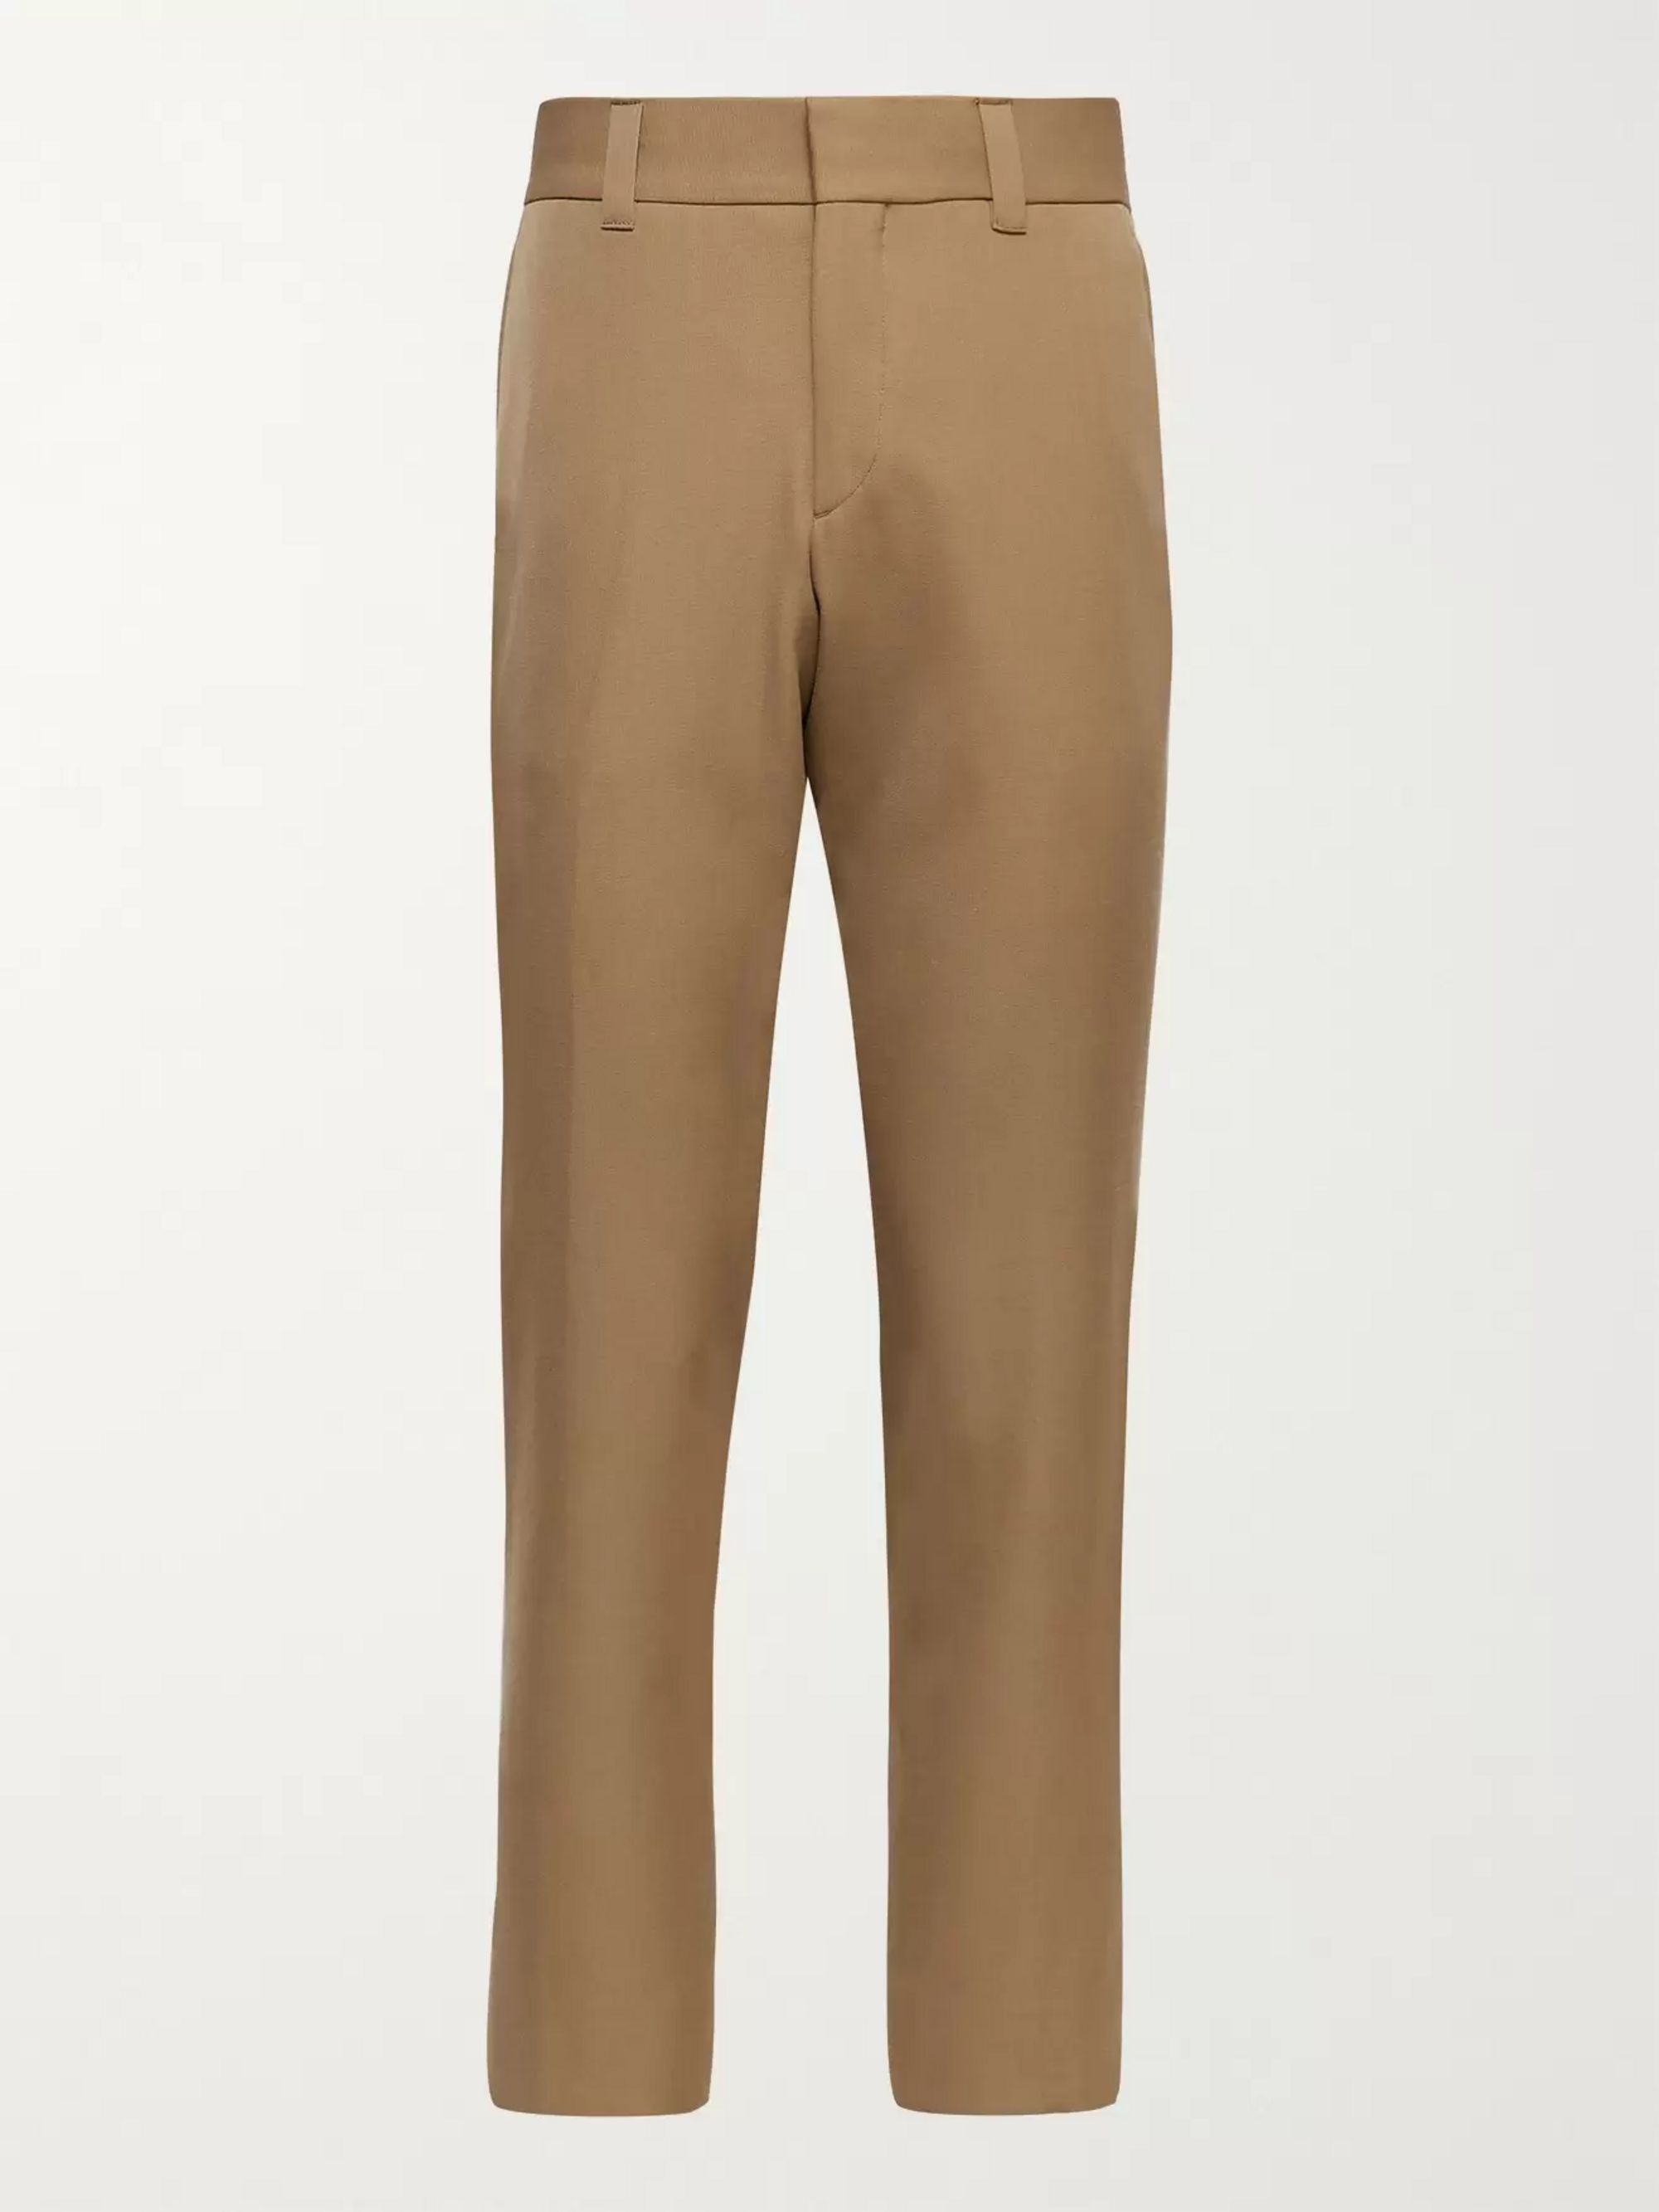 BURBERRY Slim-Fit Tapered Wool Trousers